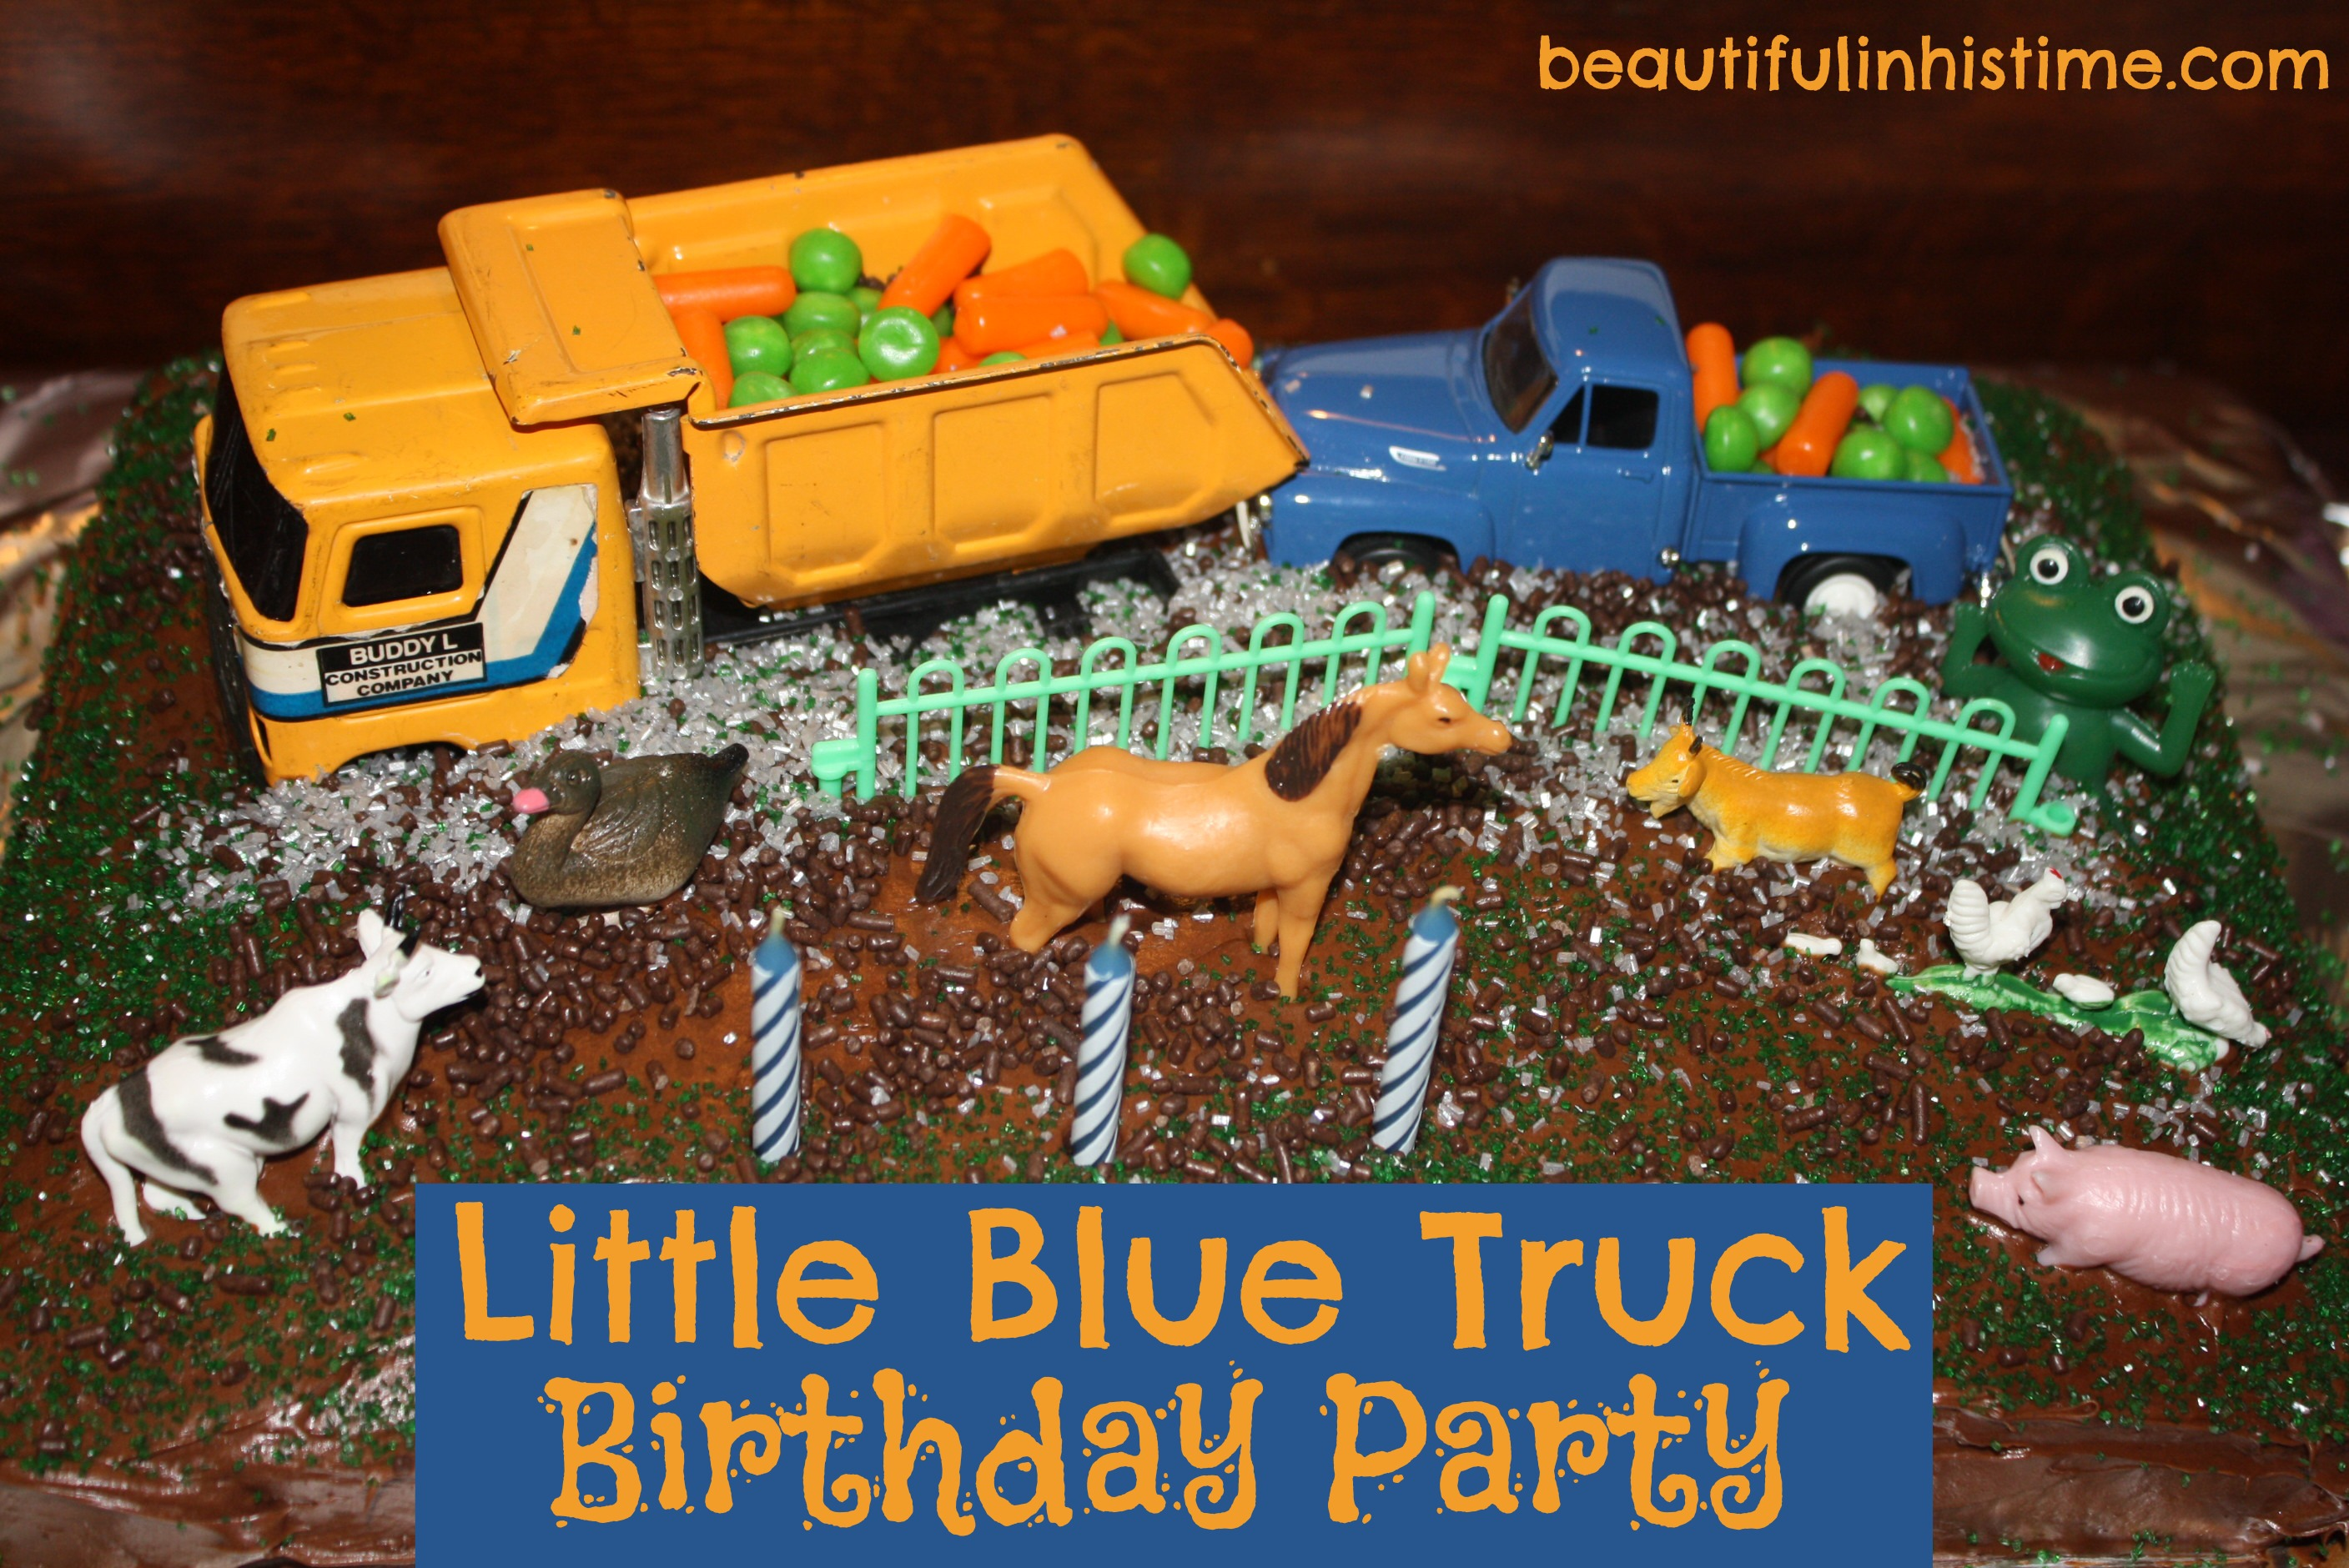 Ezras Little Blue Truck 3rd Birthday Party